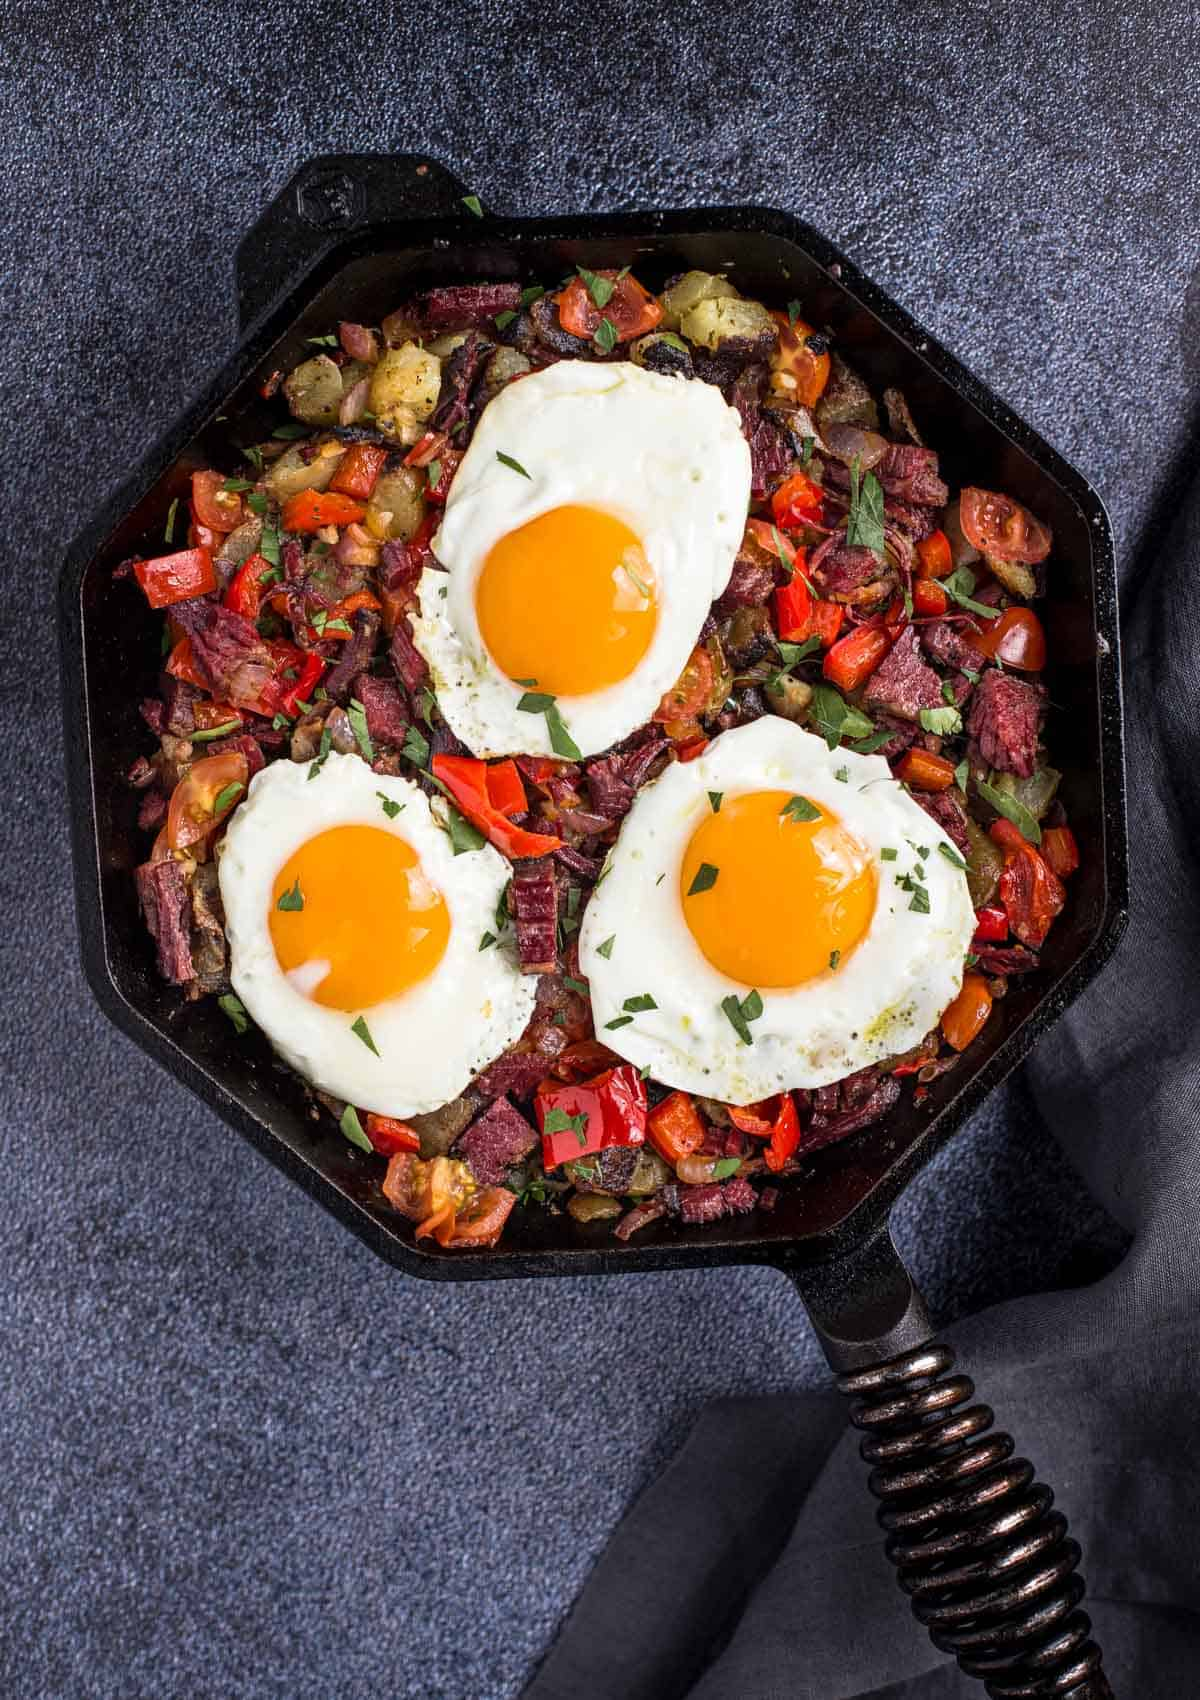 Skillet corned beef hash with eggs sunny side up.